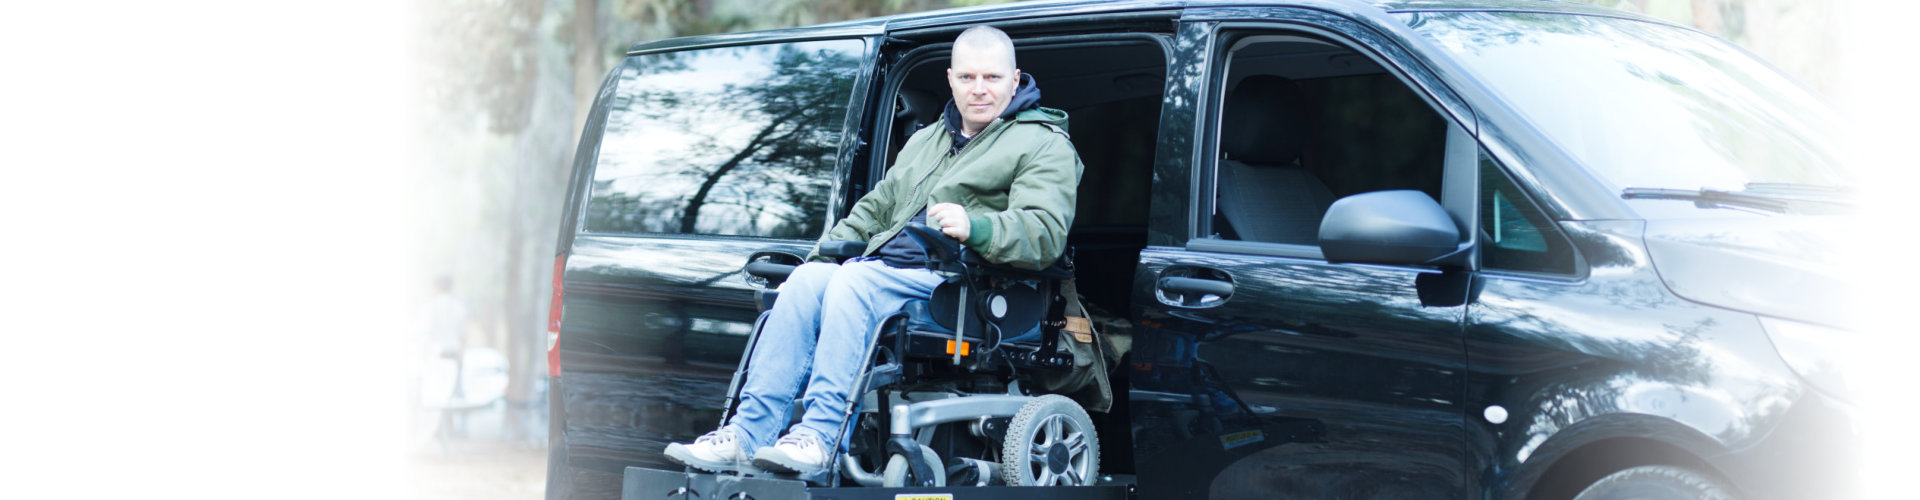 black van with a man on a wheelchair